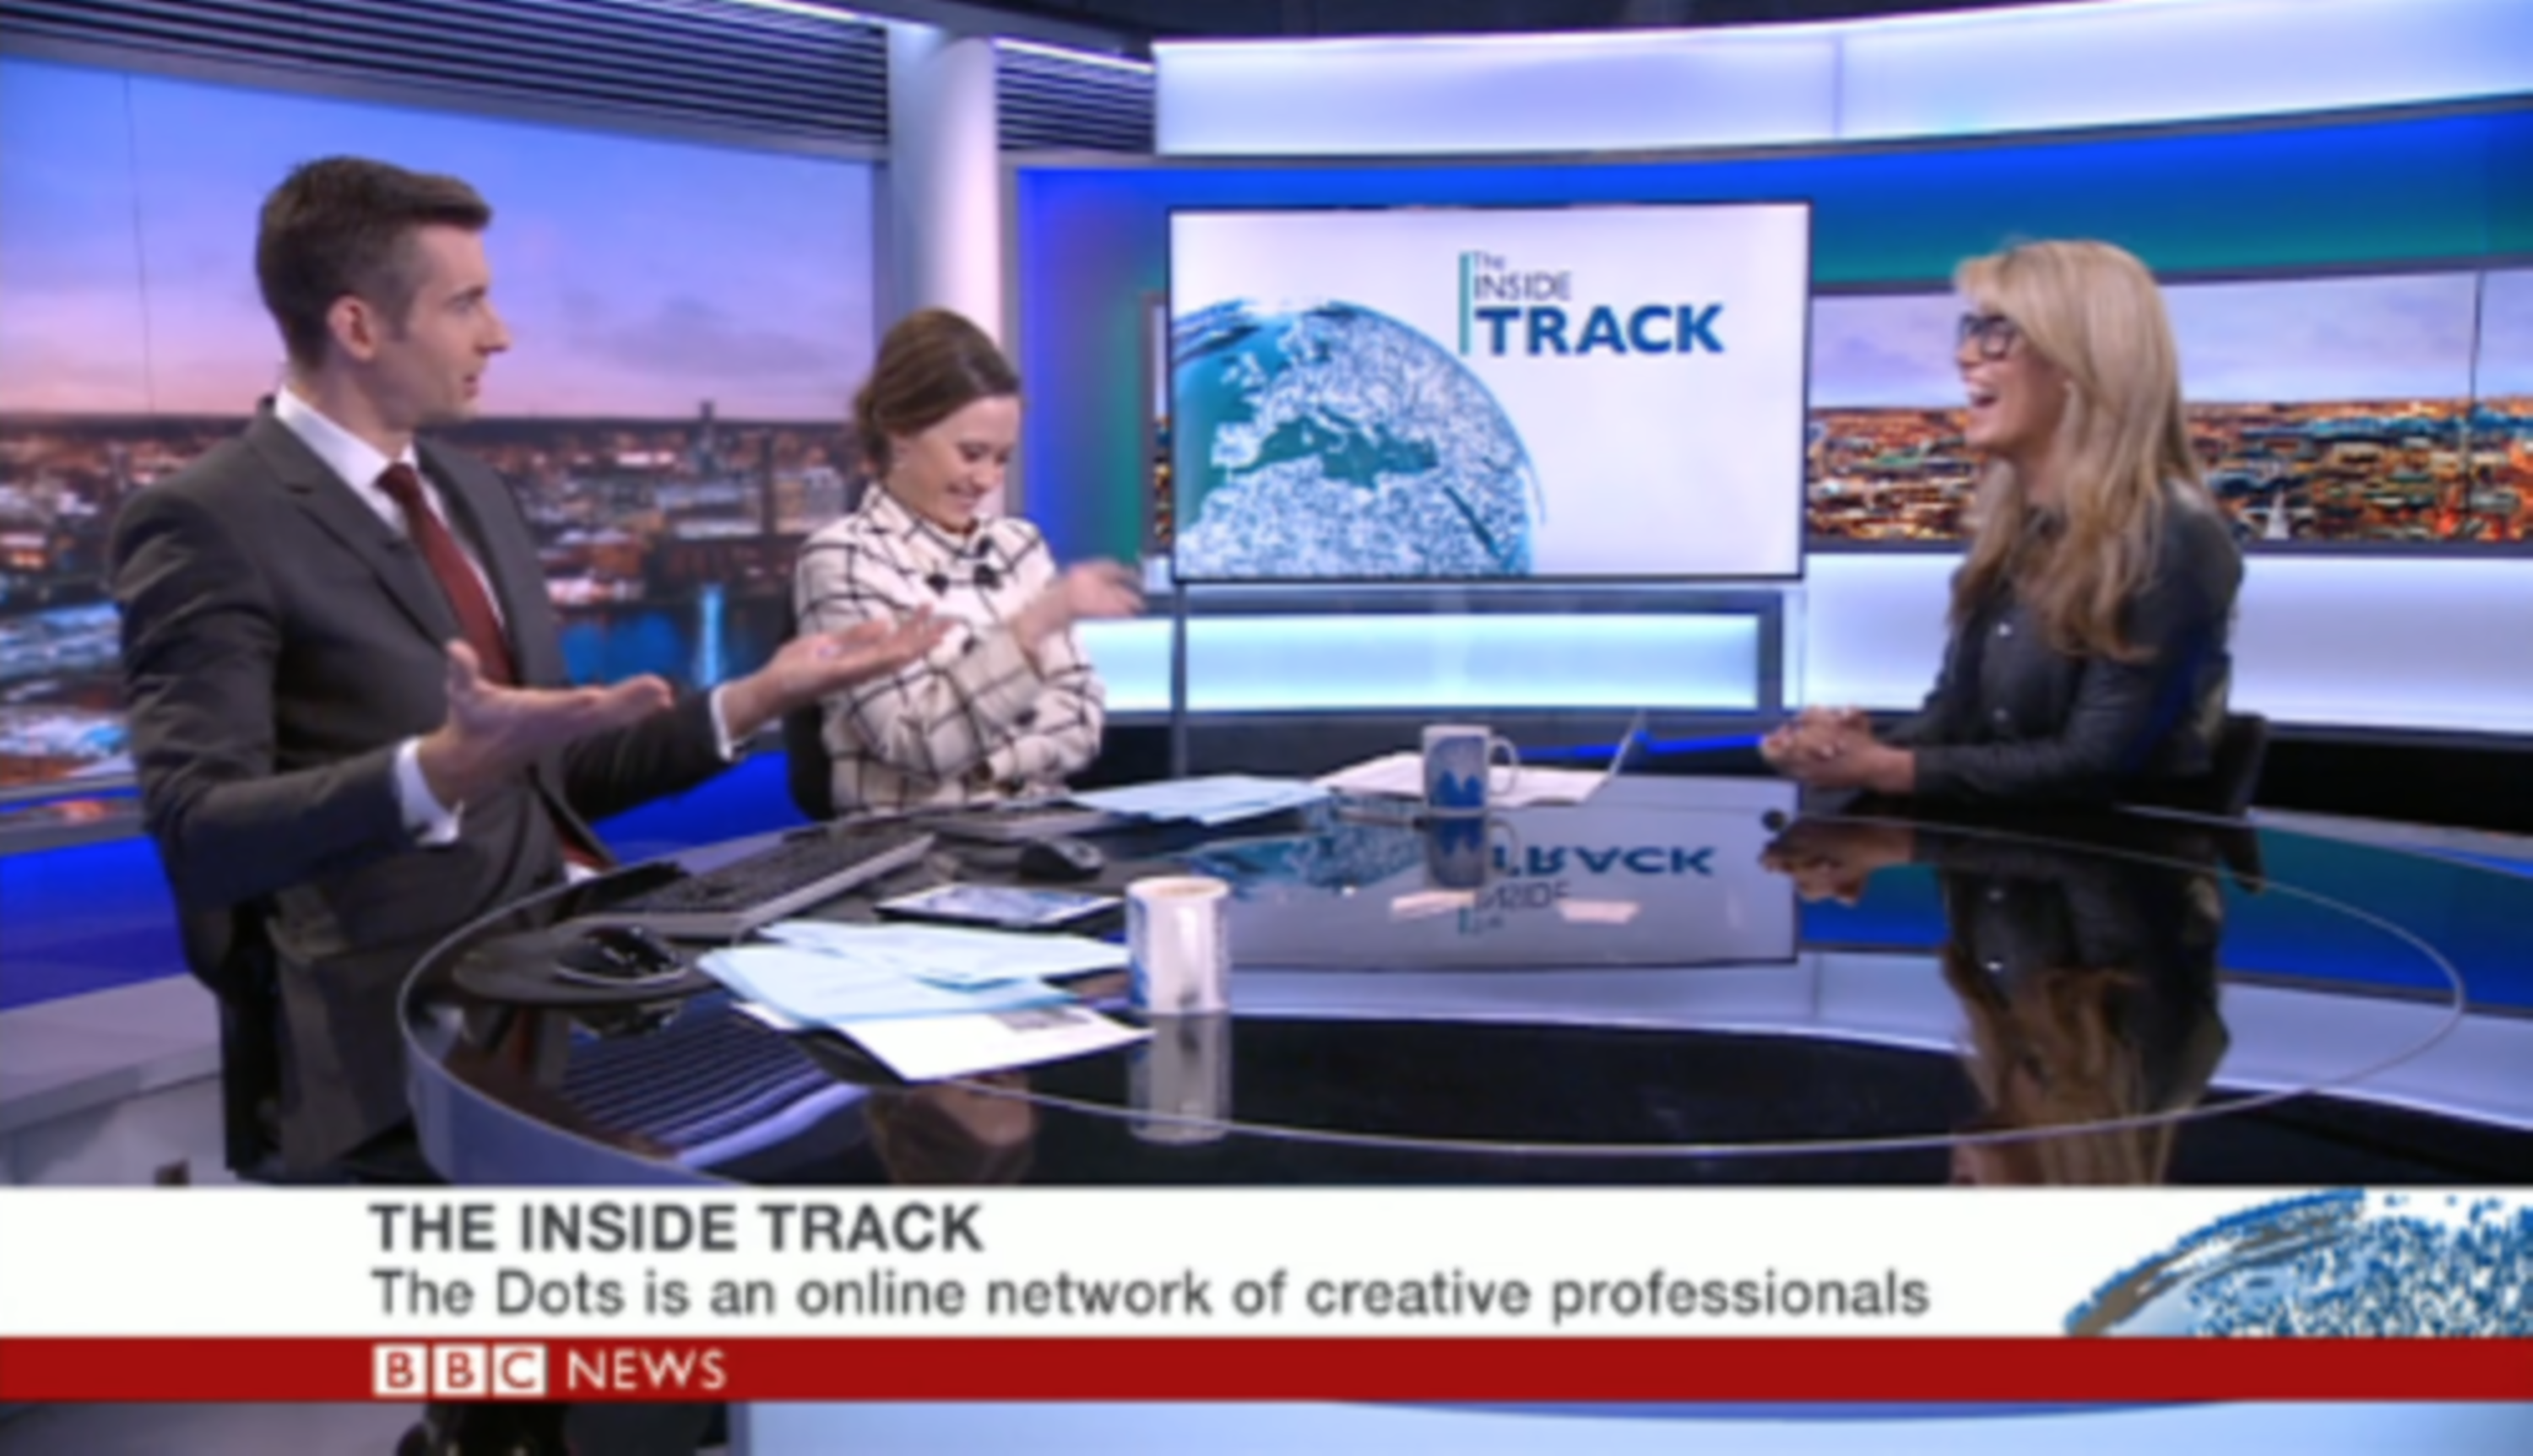 BBC Business Live Interview - Pip Jamieson, The Dots | The Dots